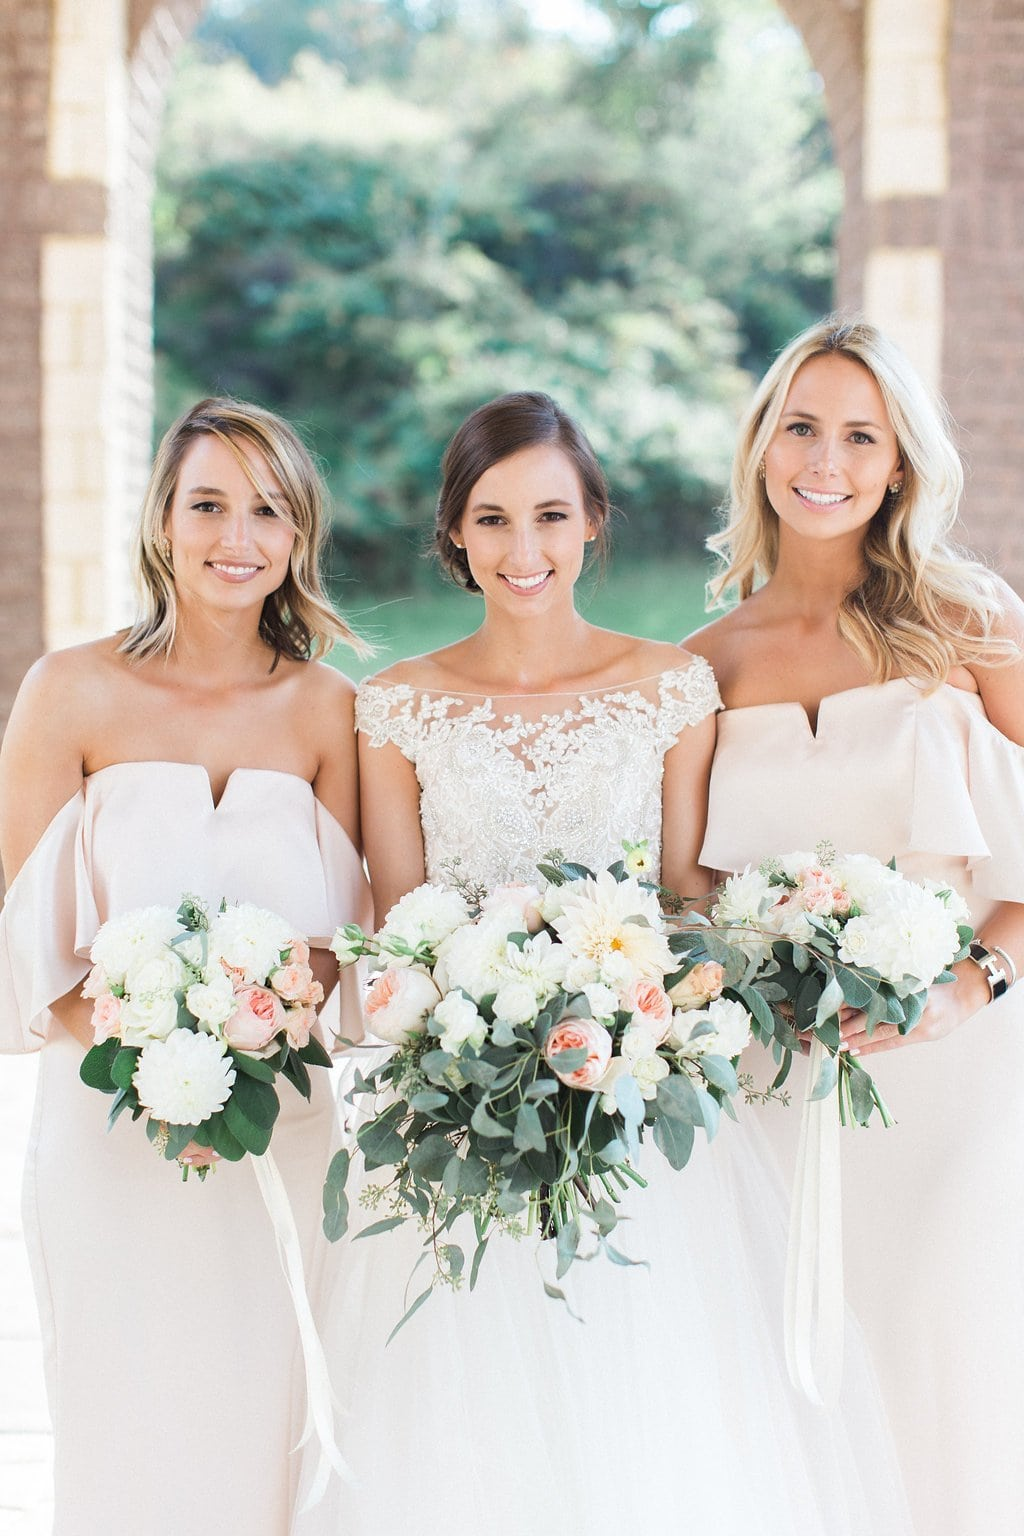 Bride with her bridesmaids outside of the church